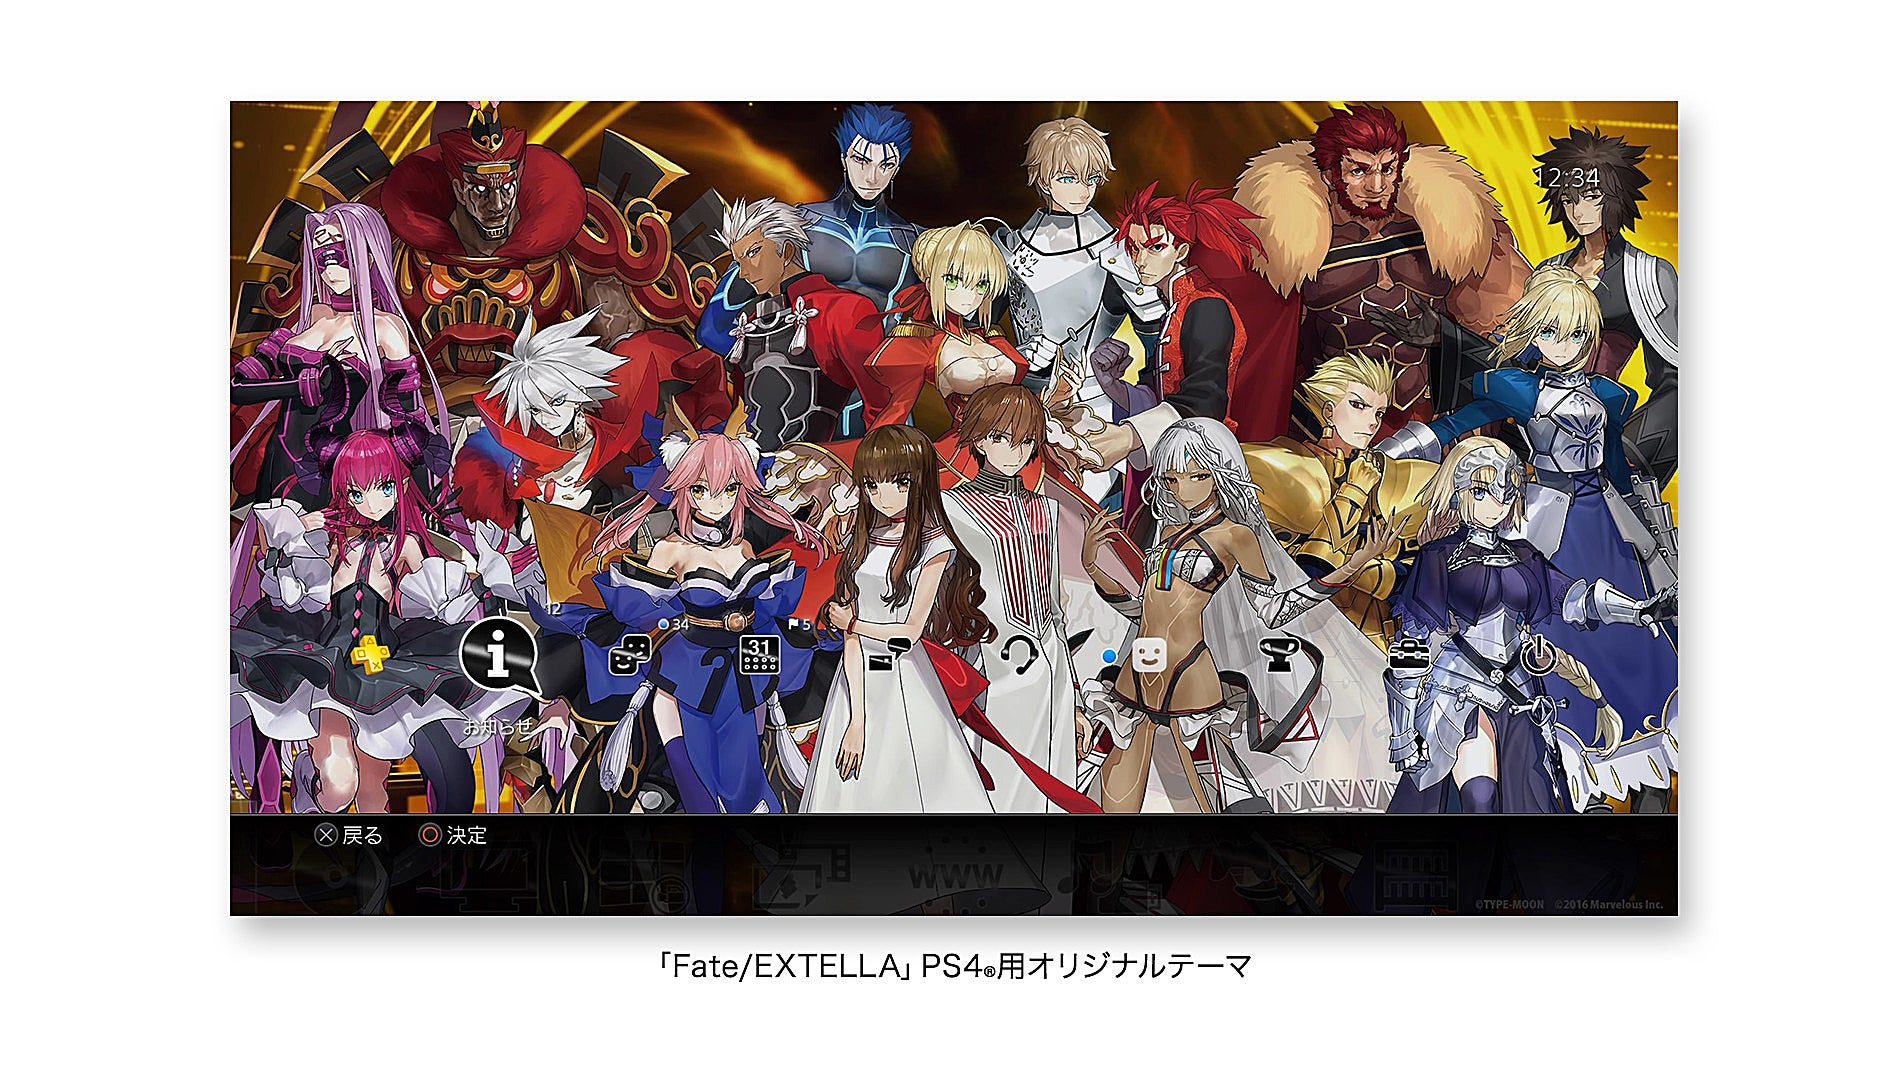 RetroPixl Sony Playstation 4 (PS4) Fate / Extella Limited Edition